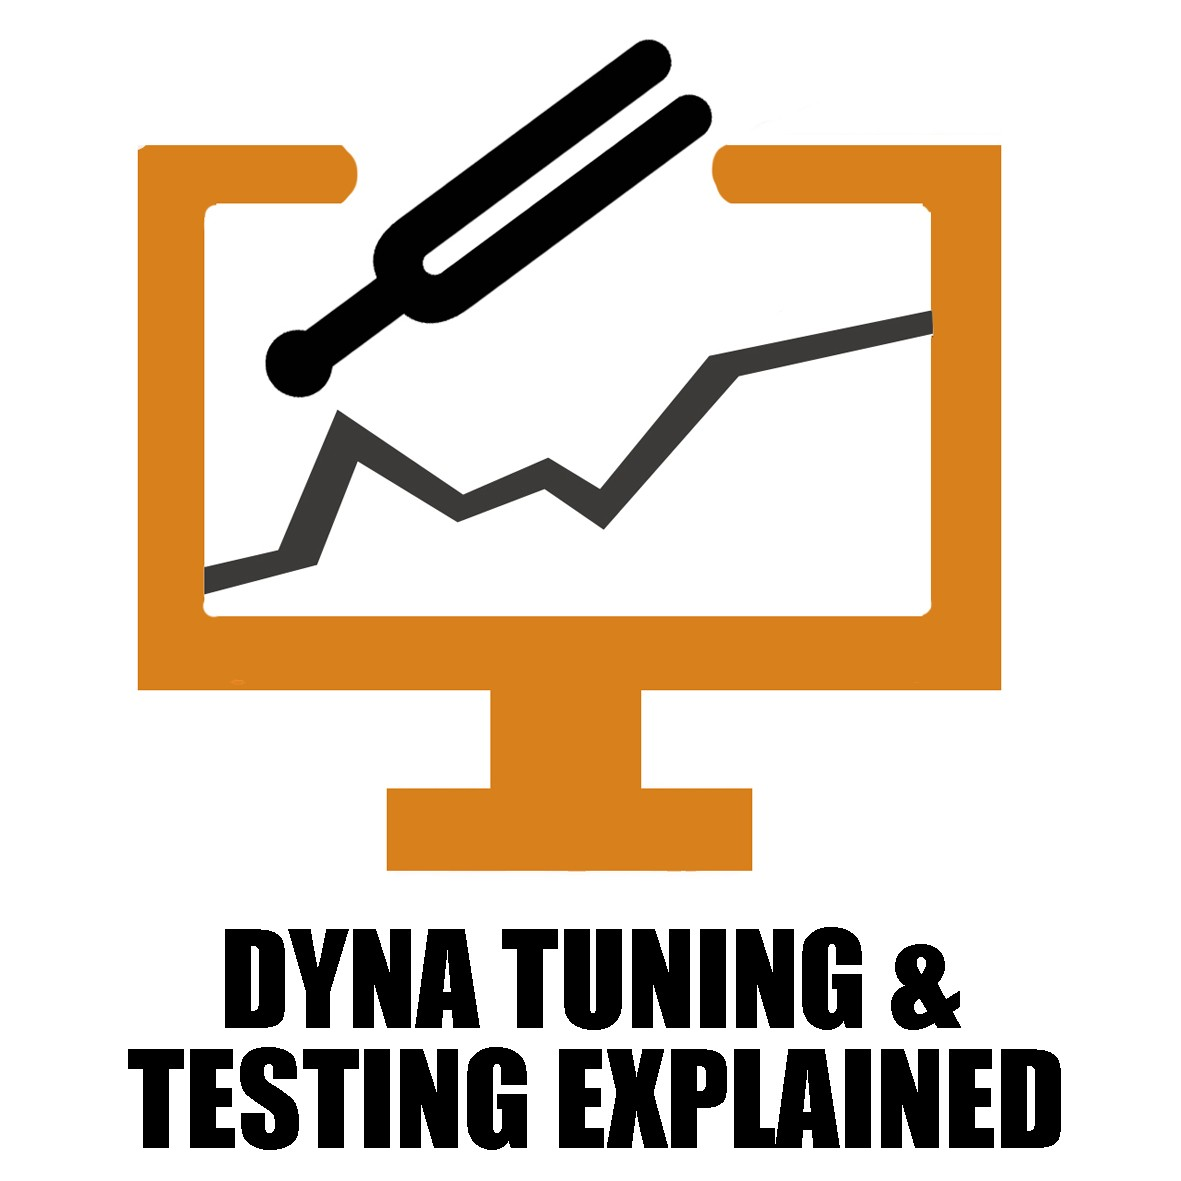 harley dyna tuning explained